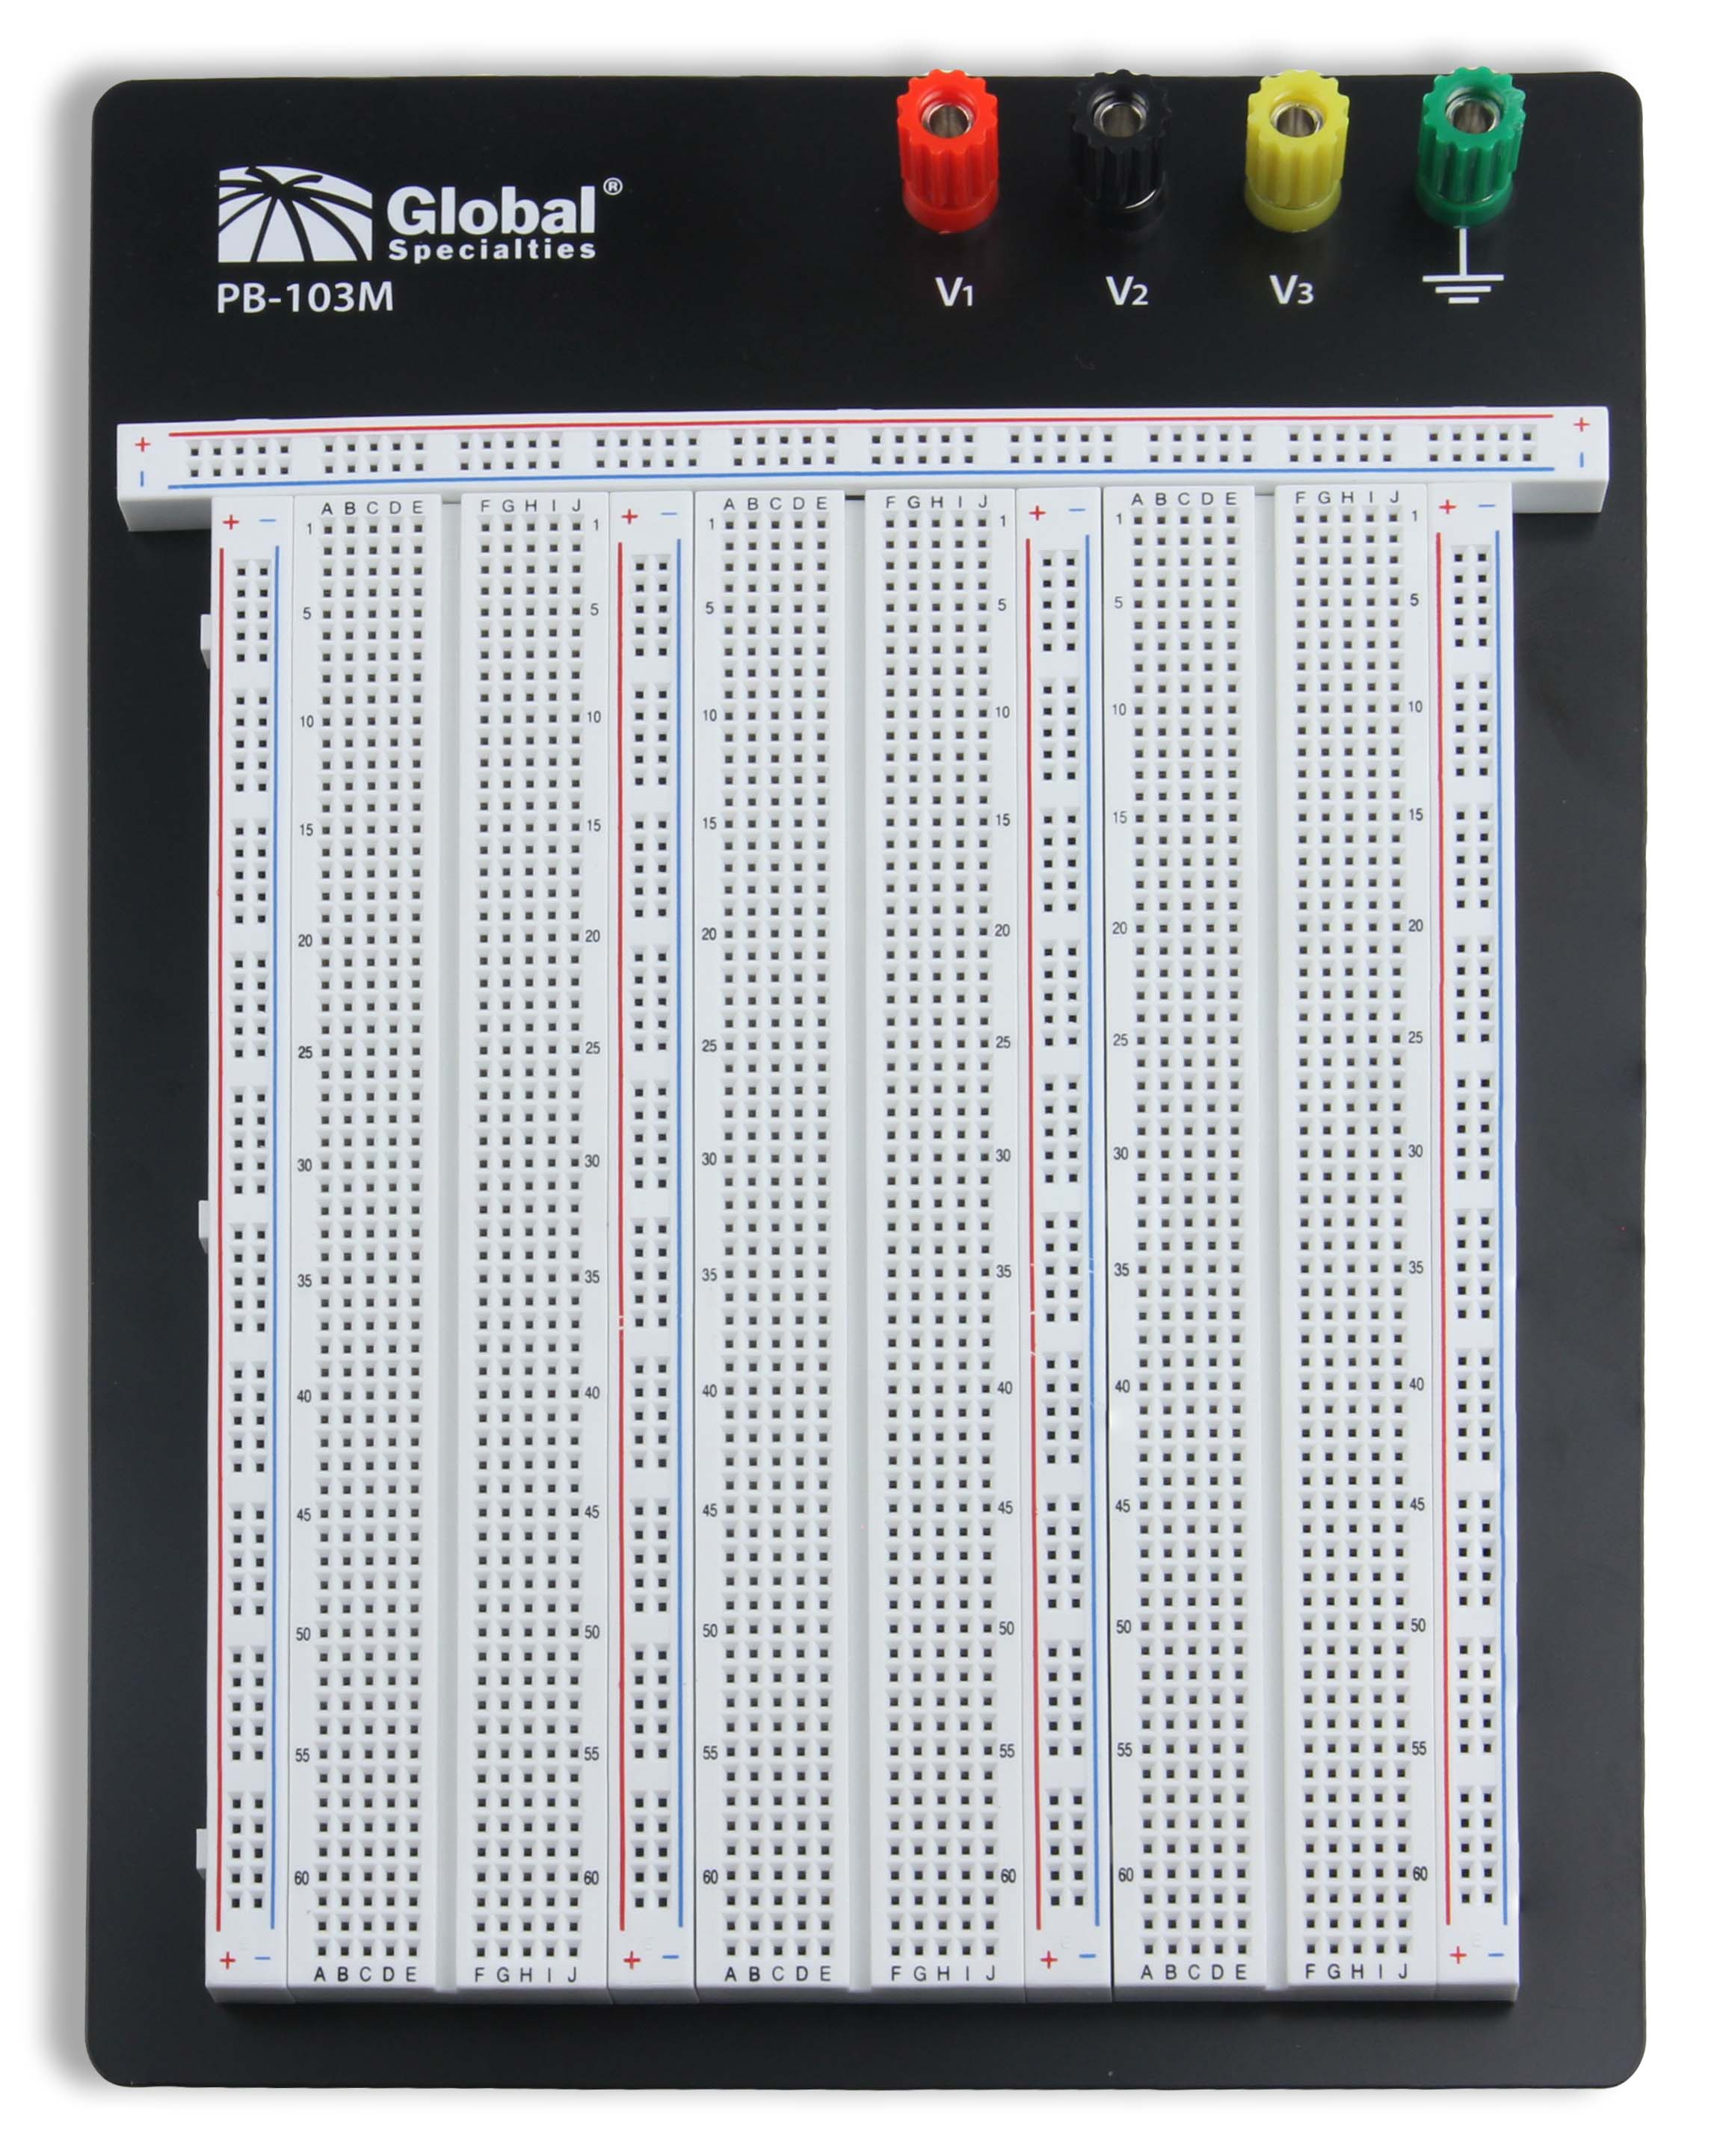 Global Specialties PB-103M Externally Powered 2390 Tie-Point Breadboard